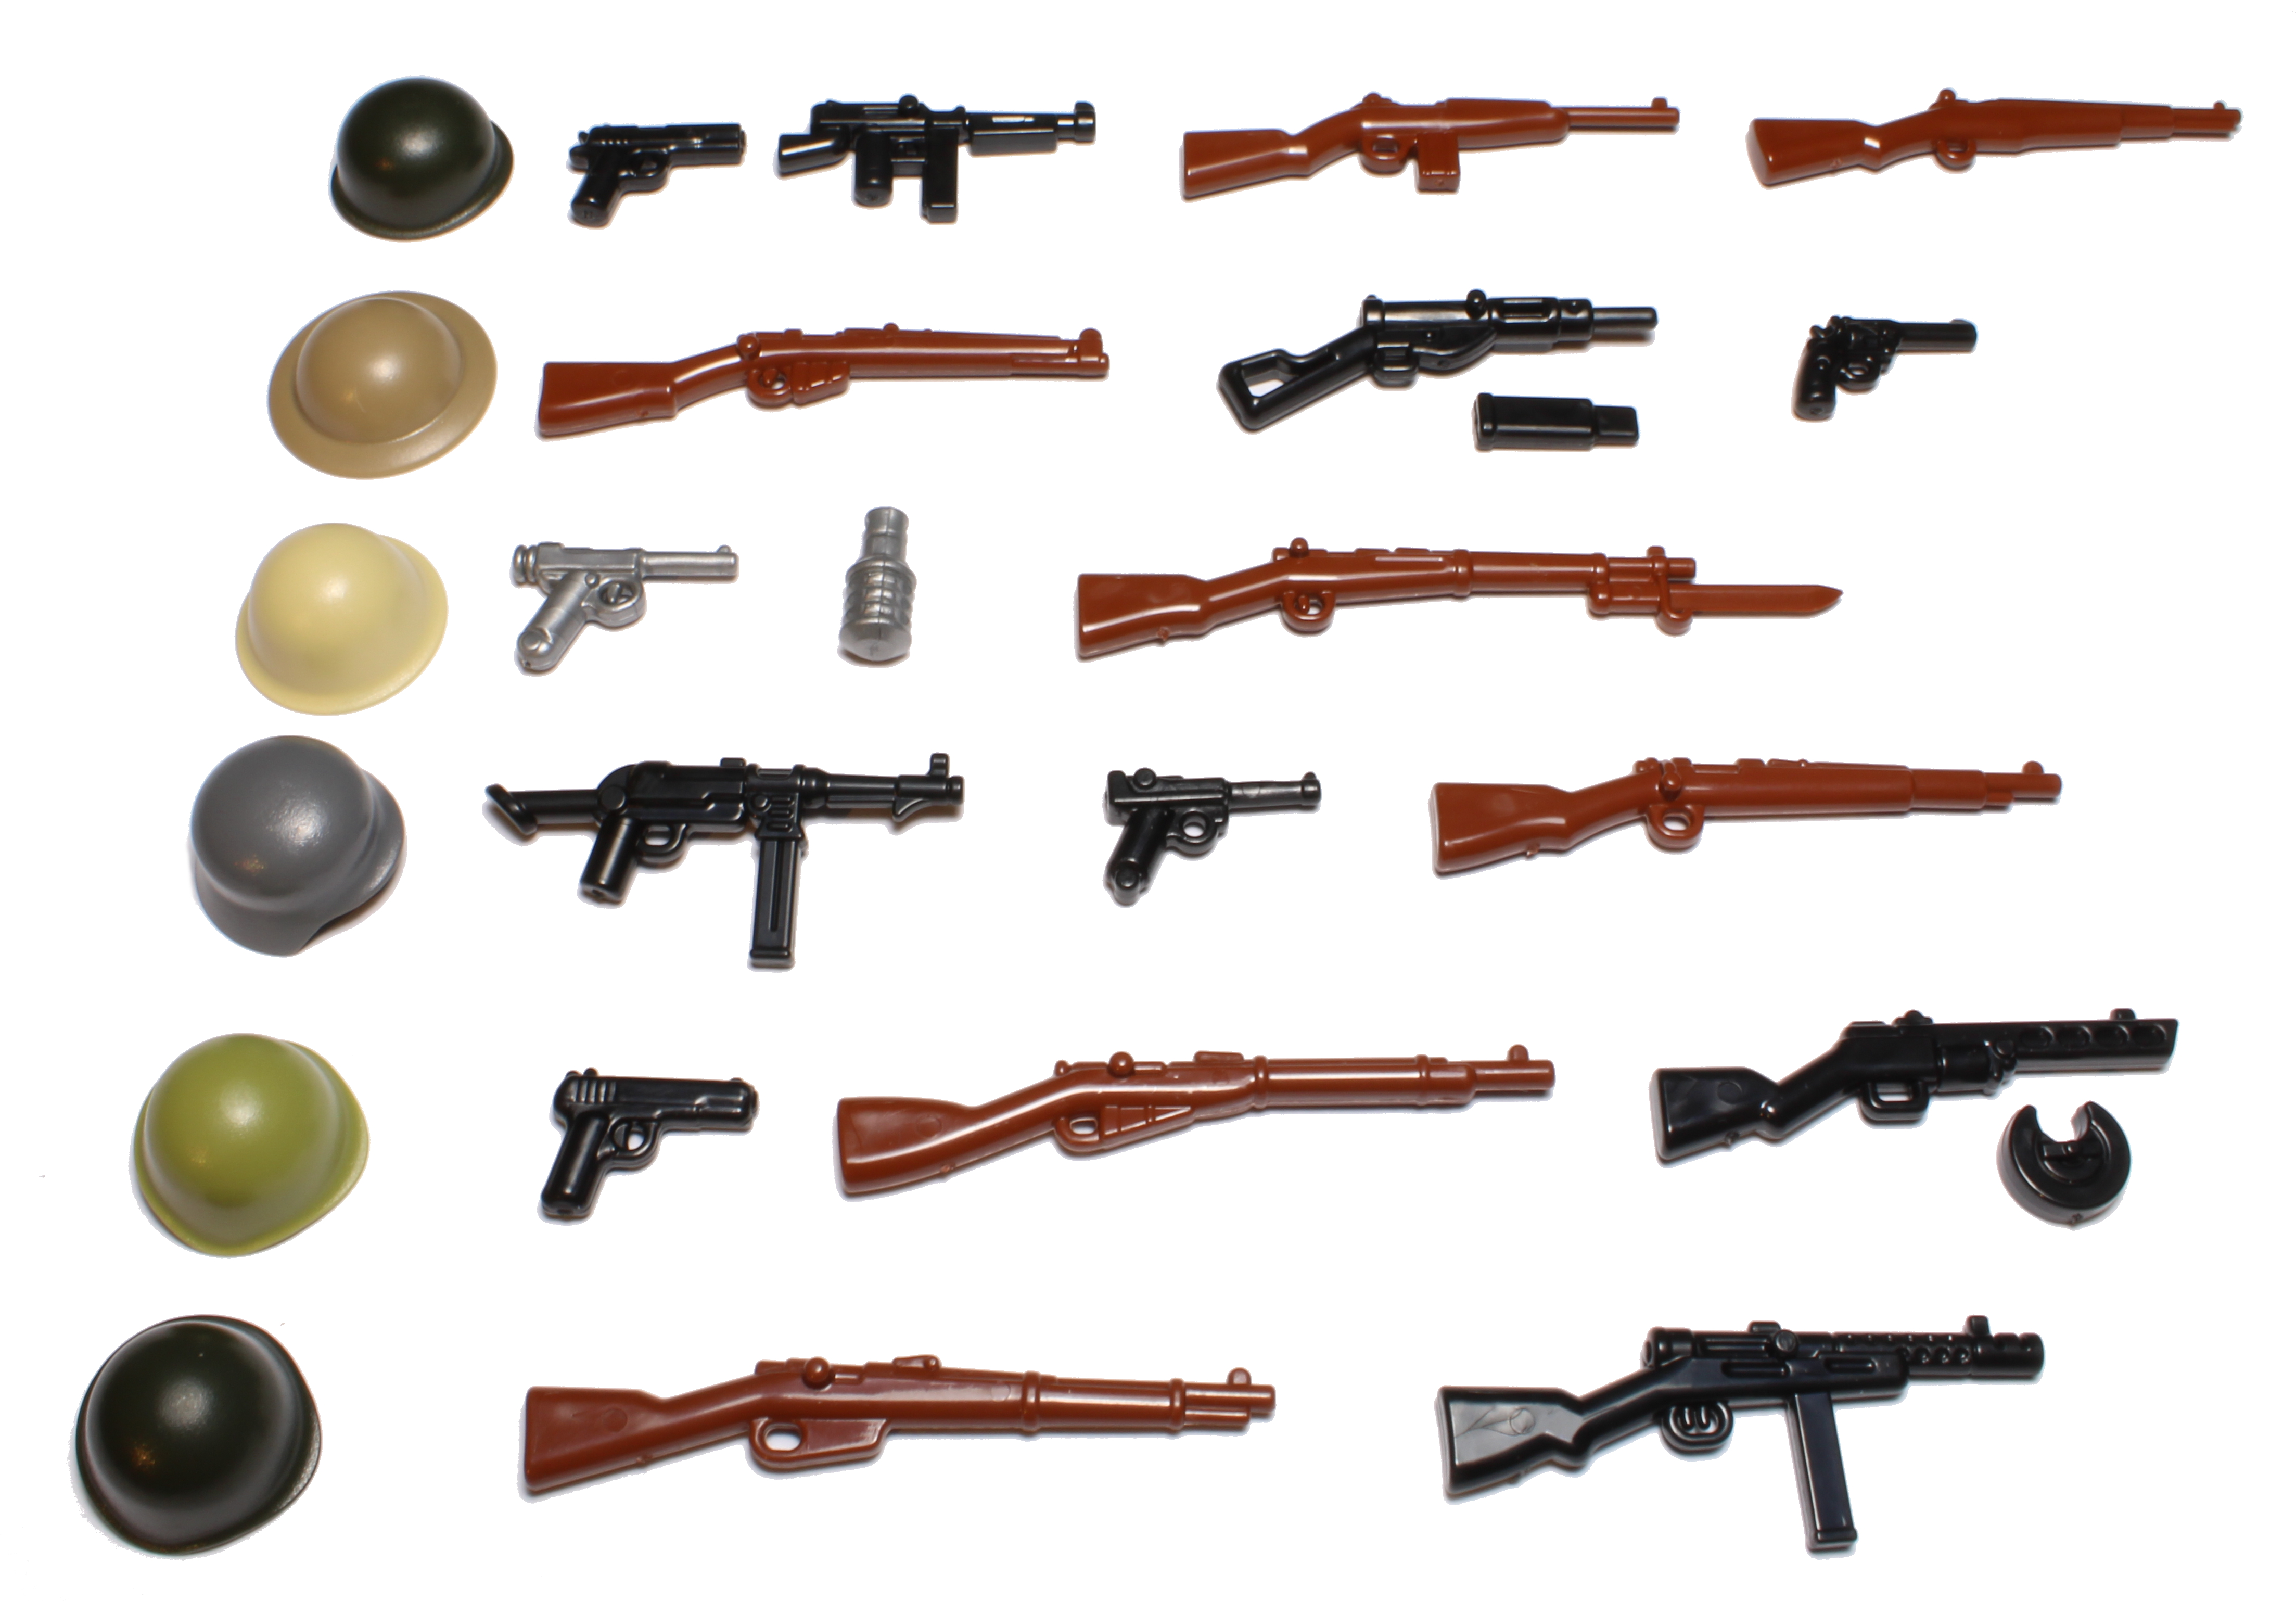 BrickArms World War 2 Weapons Pack Vs 2 Accessories for LEGO Minifigures NEW